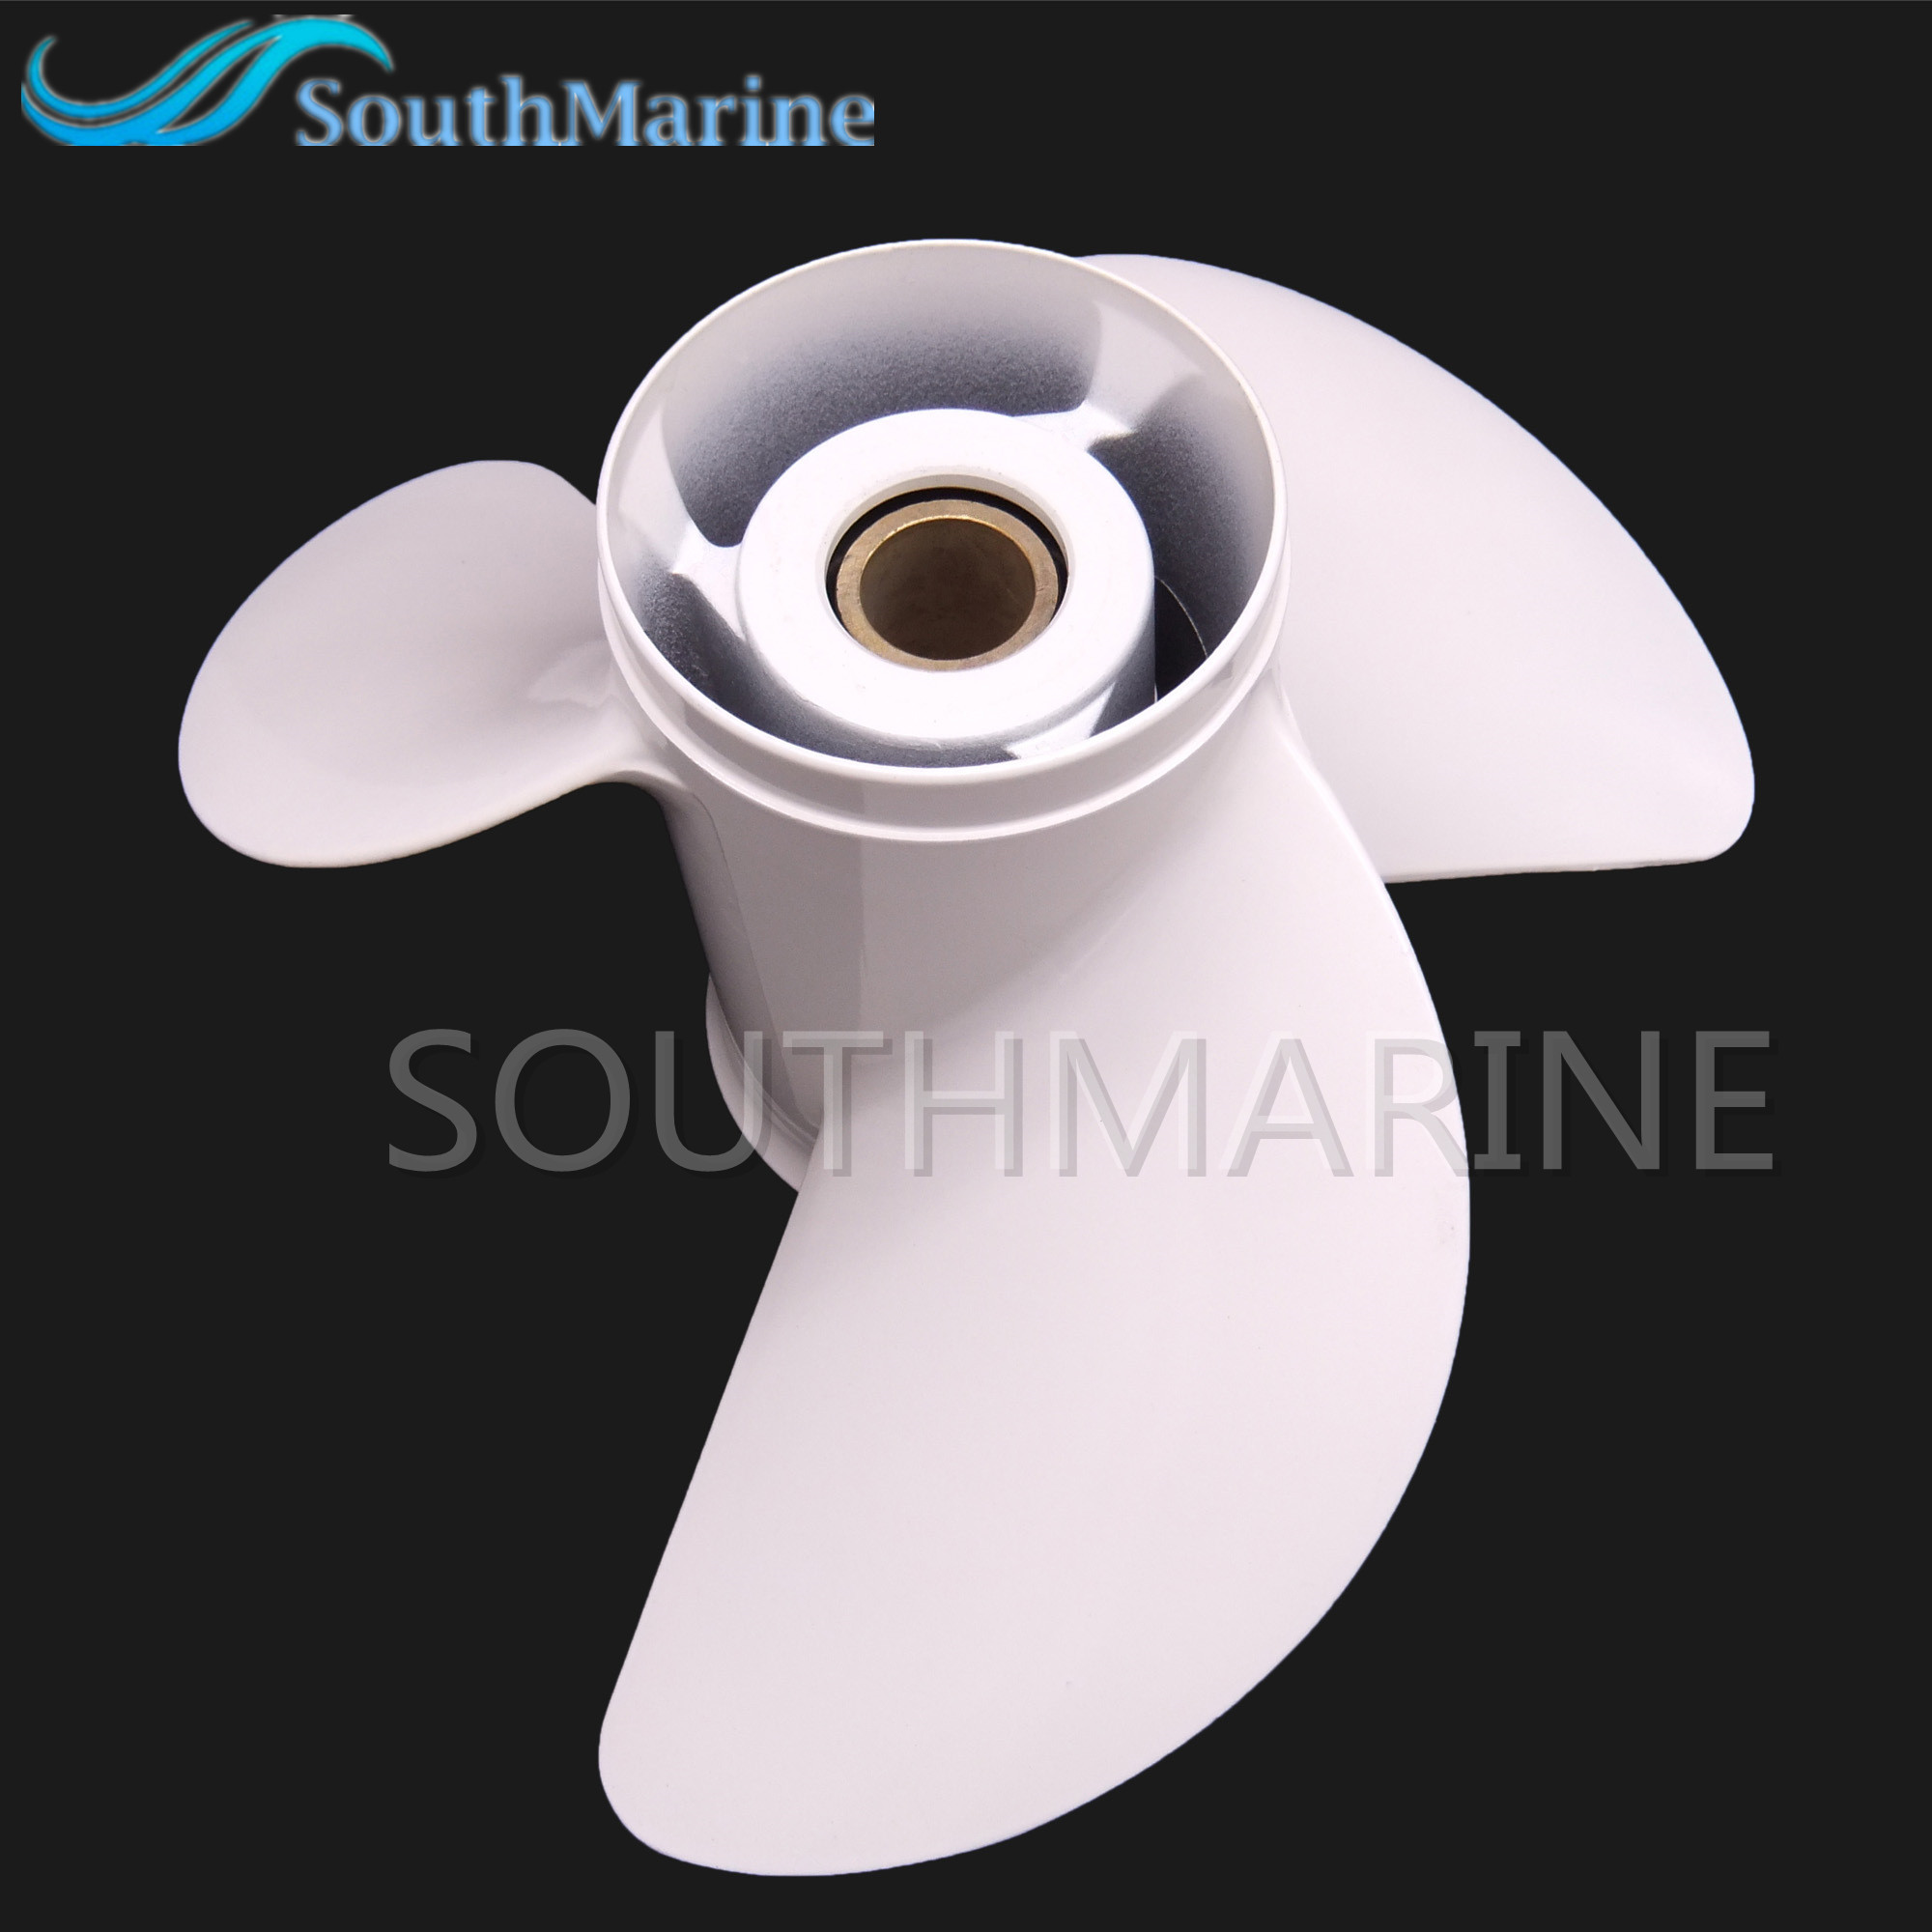 Outboard Motor T85-04020000 T85-04020000-15 Propeller For Parsun Hdx Makara T60 T75 T85 T90 13 1/2x15-k Automobiles & Motorcycles